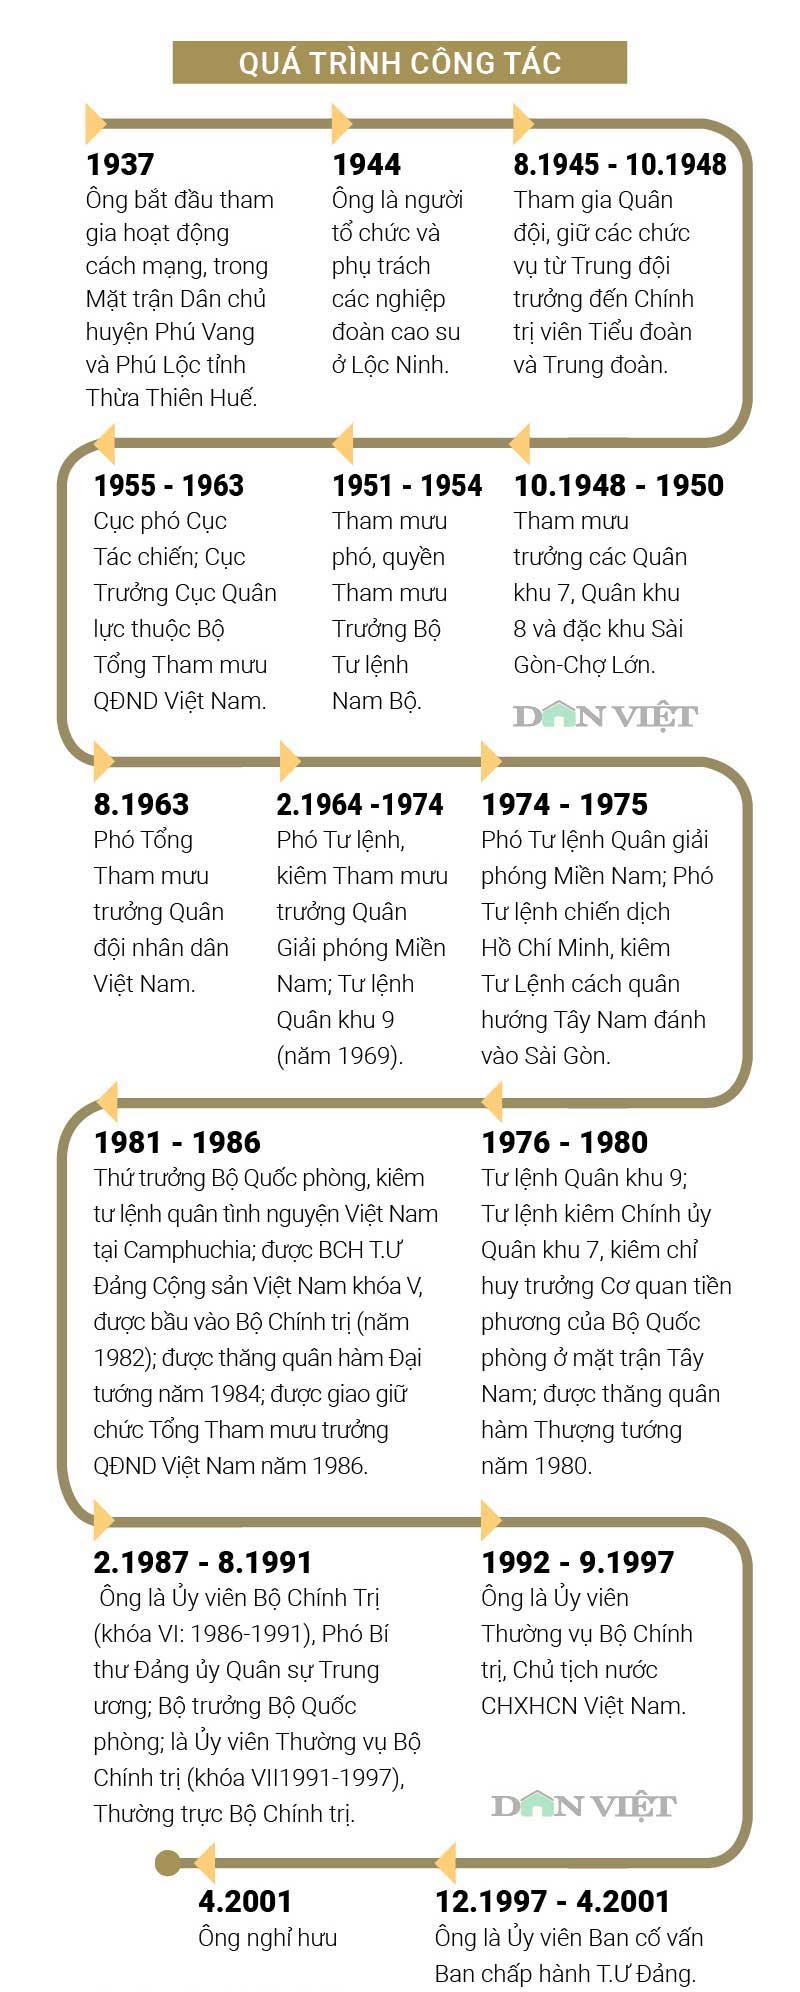 infographic: cuoc doi va su nghiep nguyen chu tich nuoc le duc anh hinh anh 3